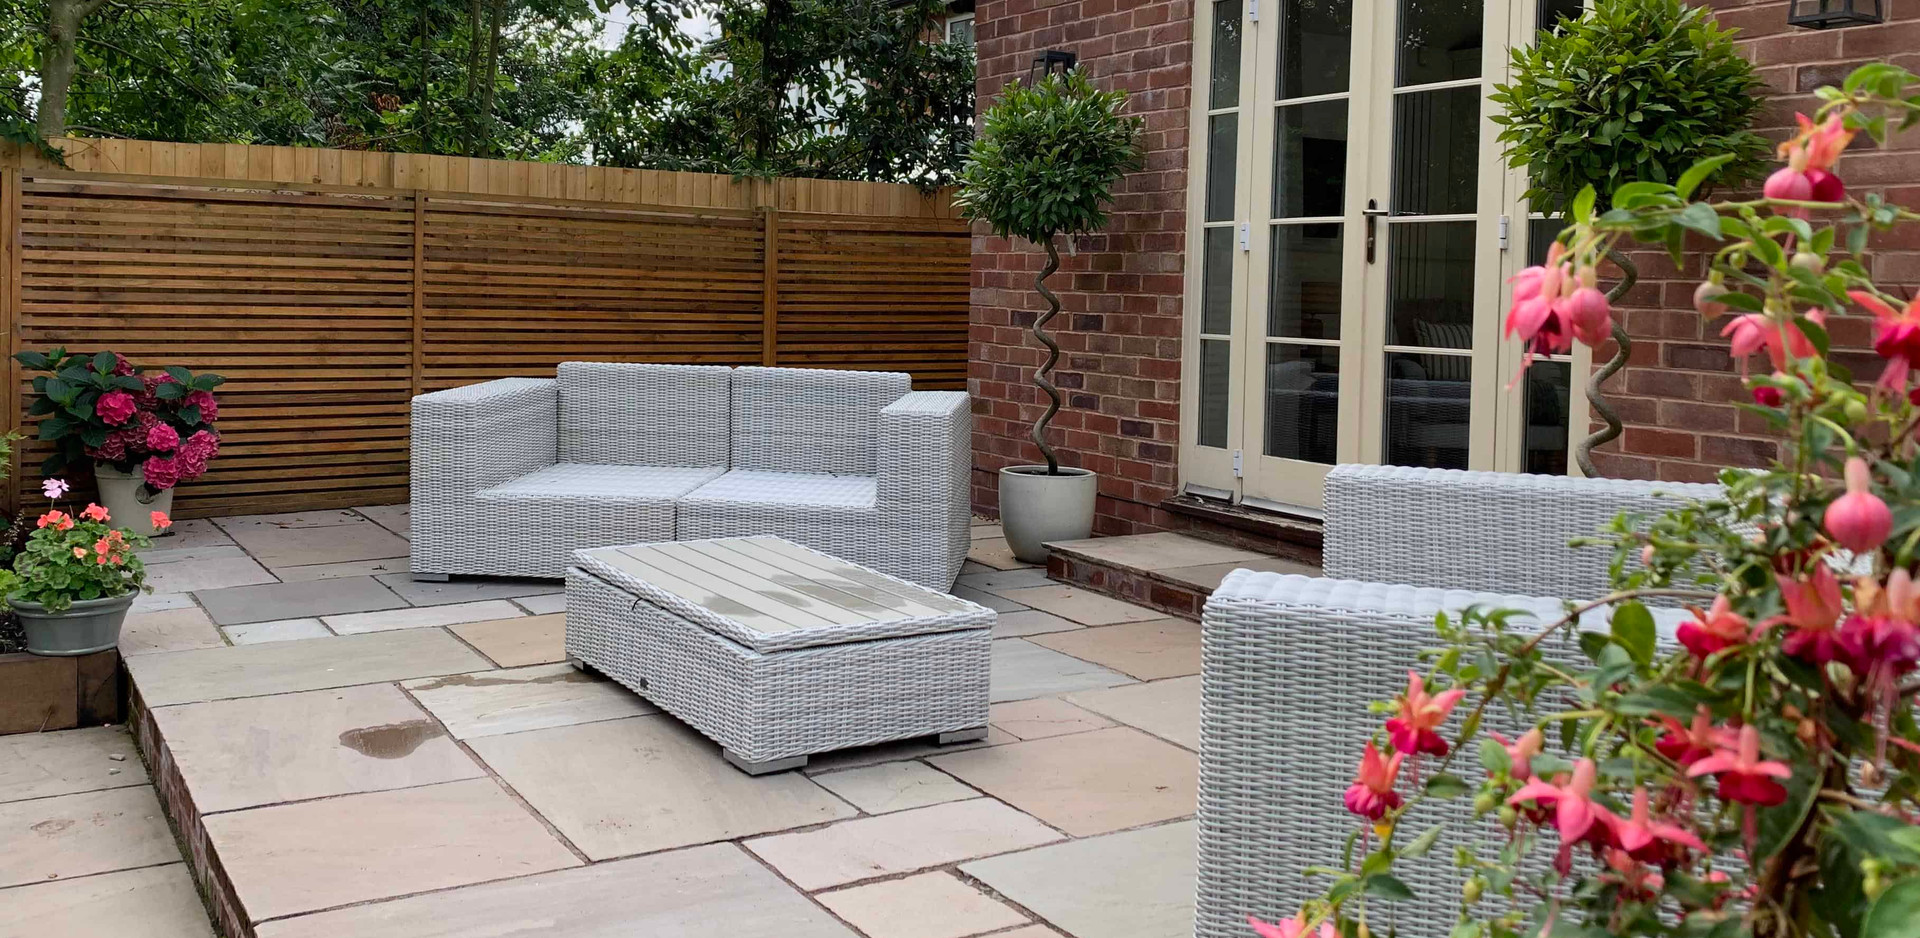 Antique Tumbled Indian Sandstone paved patio in Aslockton